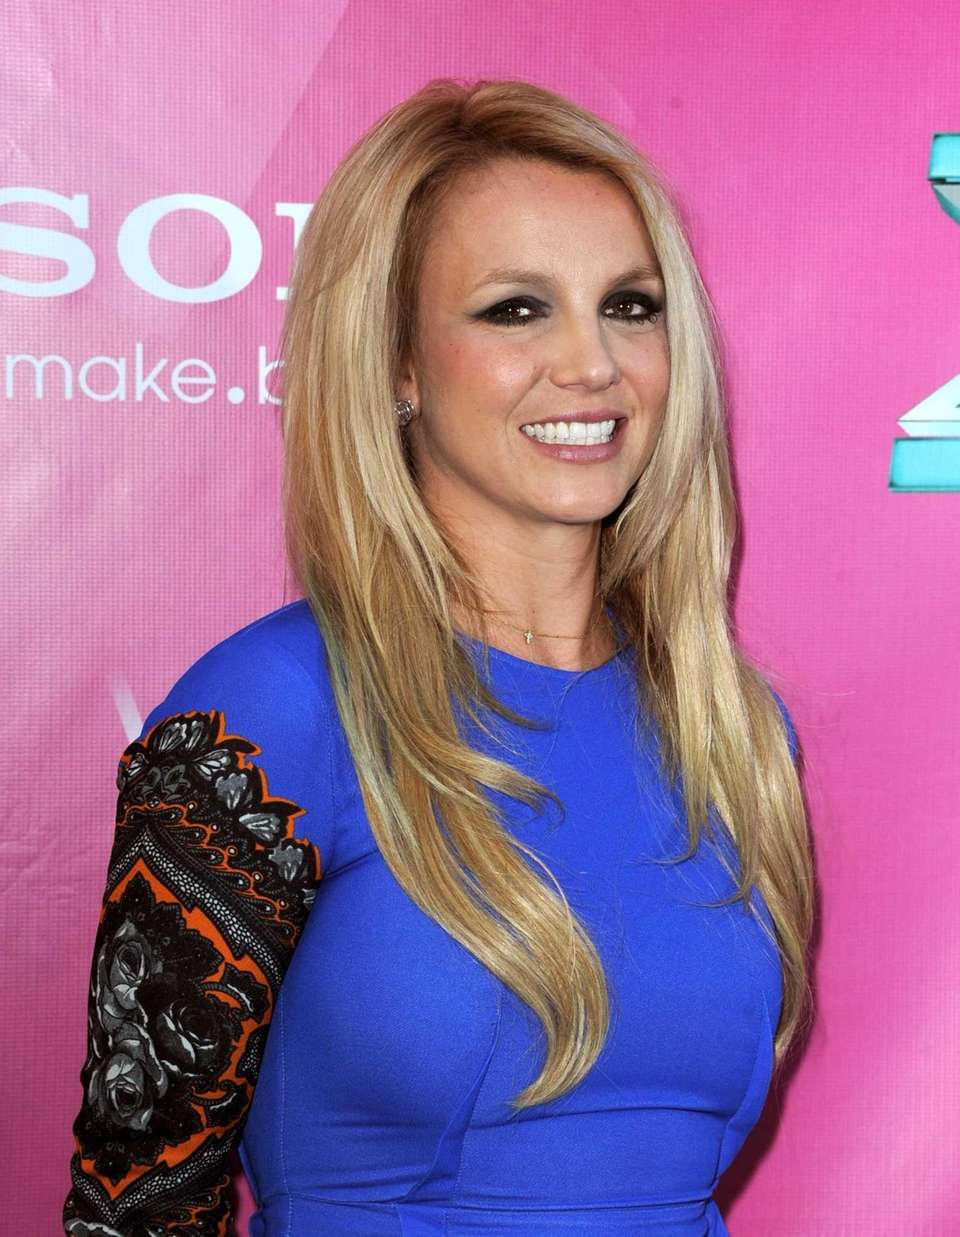 Singer Britney Spears underwent a stint in rehab